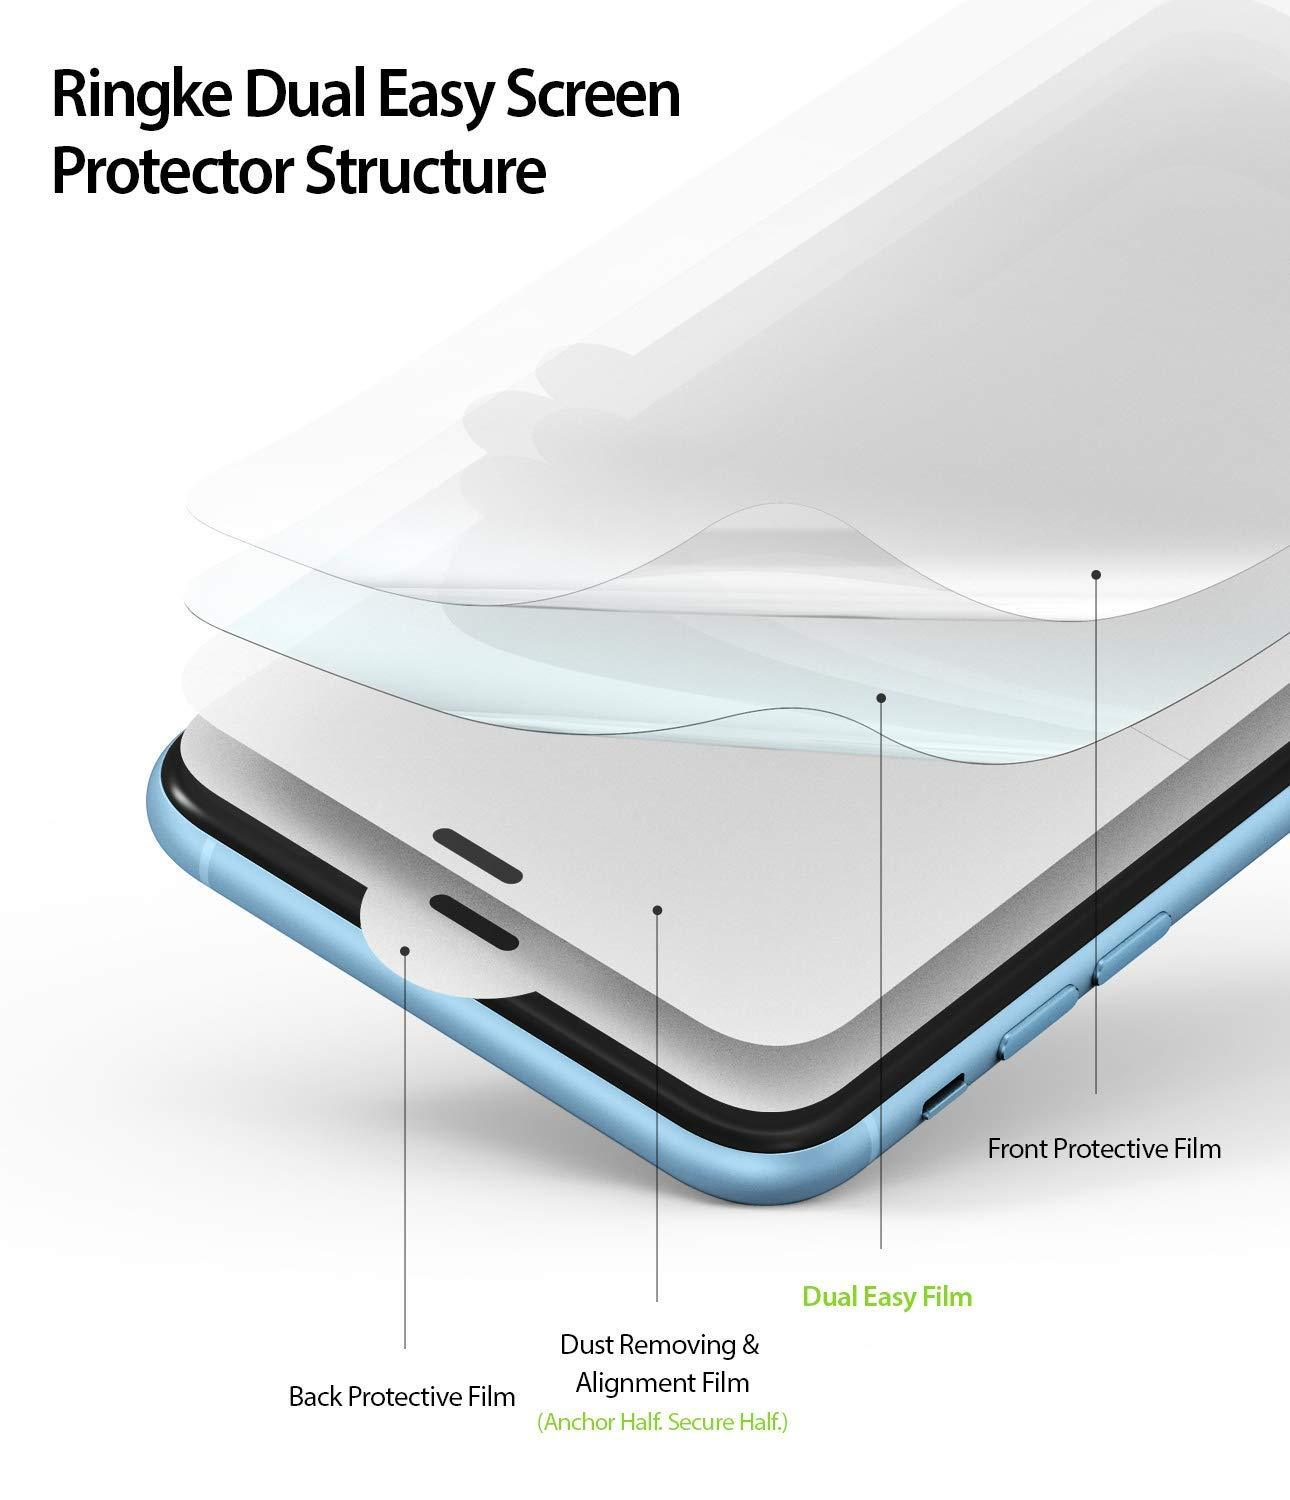 ringke dual easy film for iphone xr screen protector layered